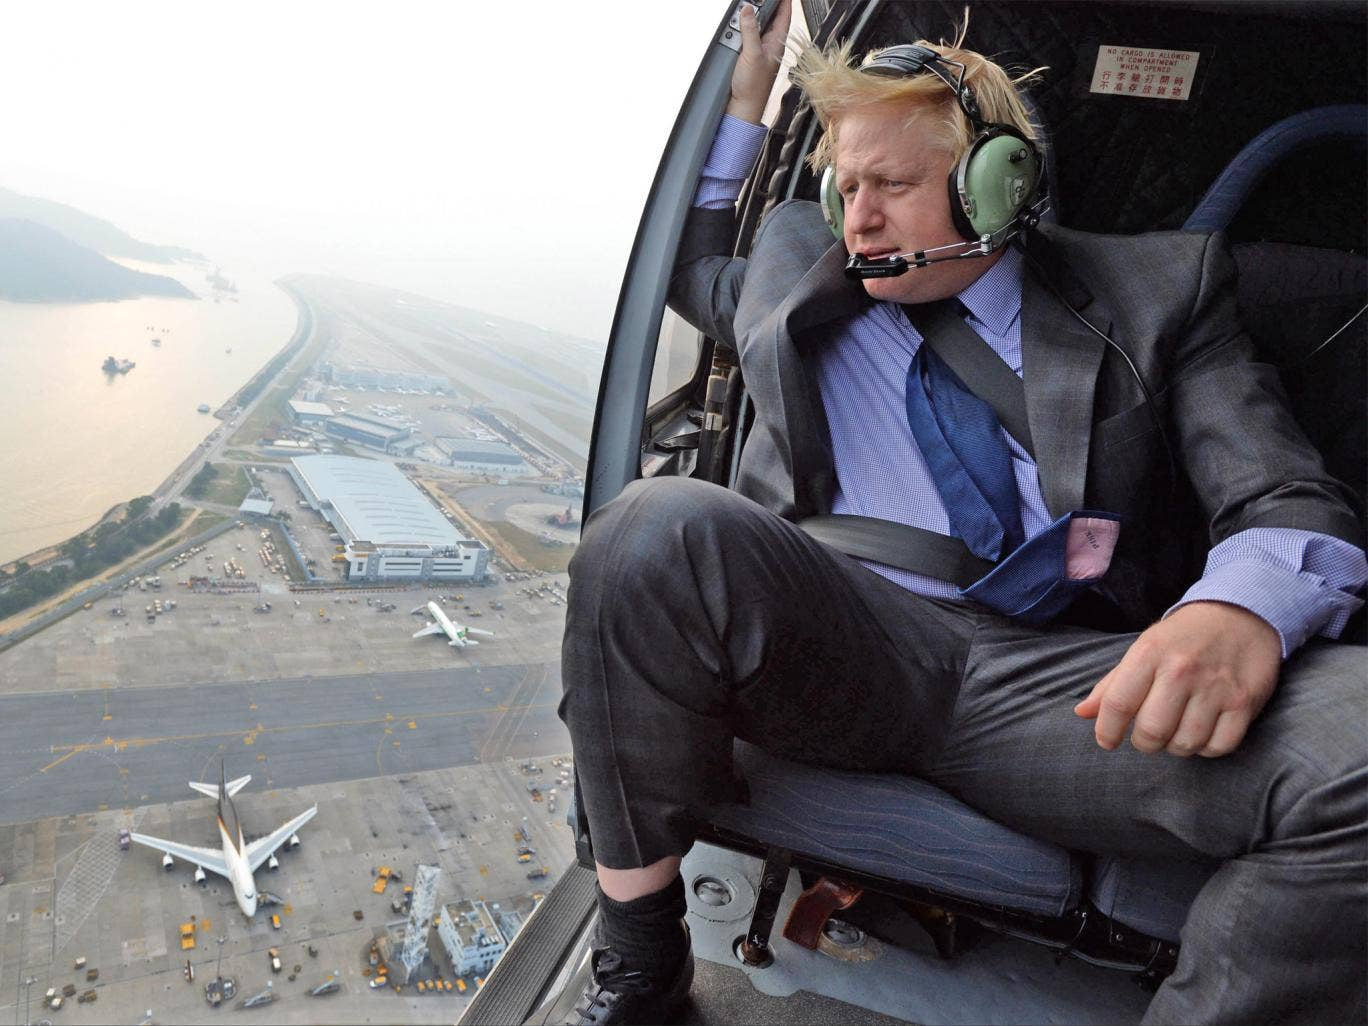 London Mayor Boris Johnson's ambitions to build an airport in the Thames Estuary has been dealt a major blow by Centrica's £4.4bn deal